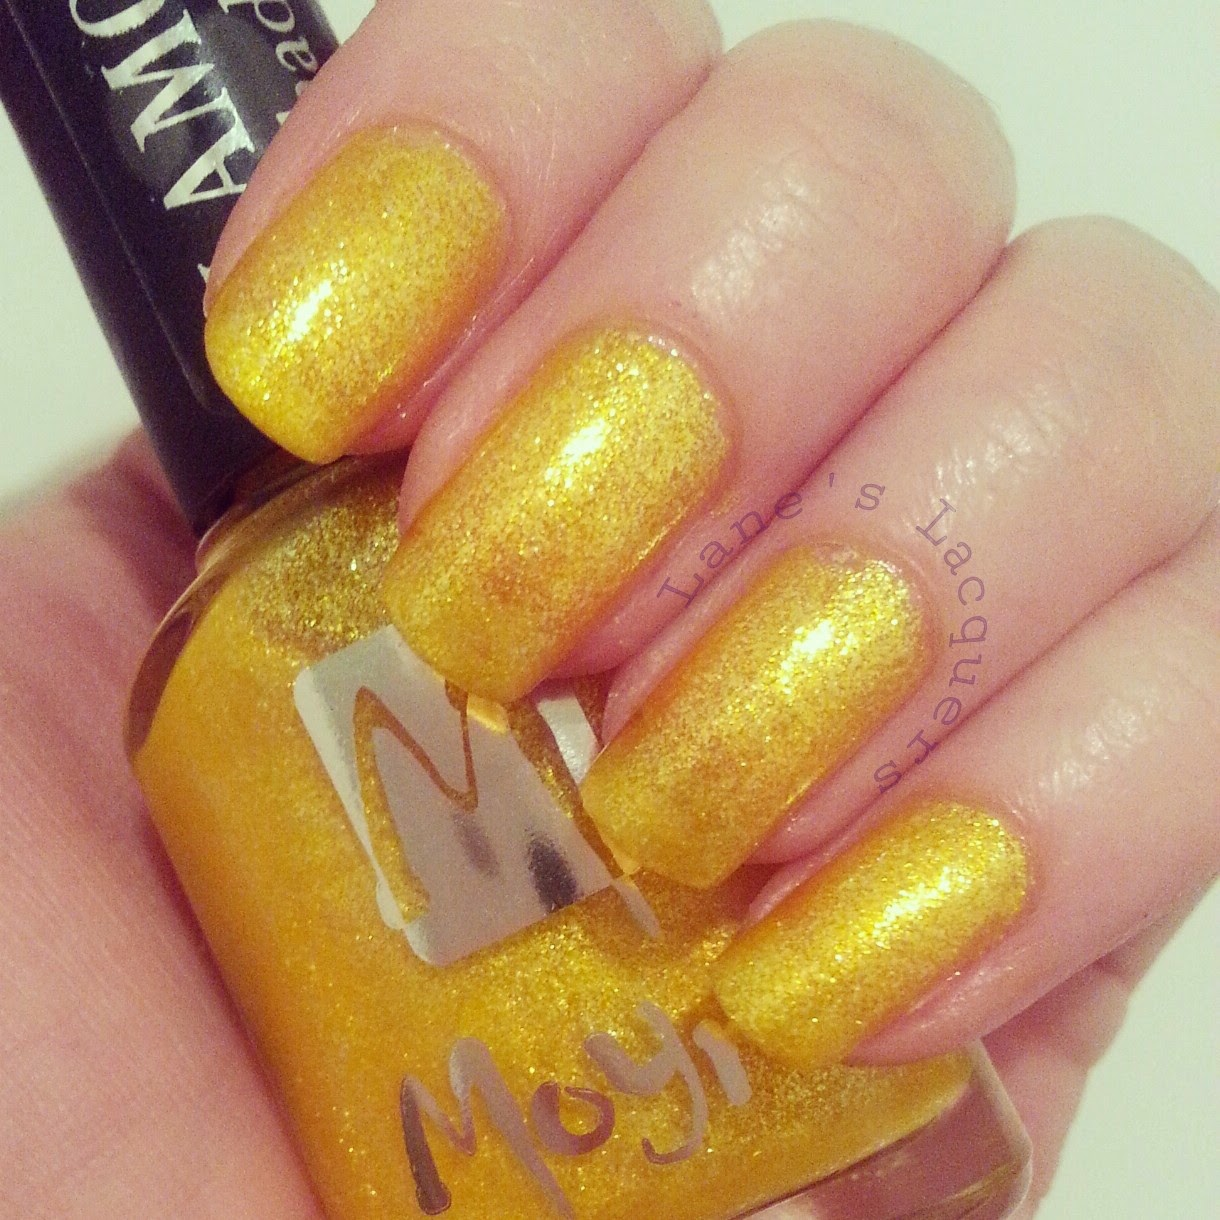 moyra-uk-no-802-swatch-nails